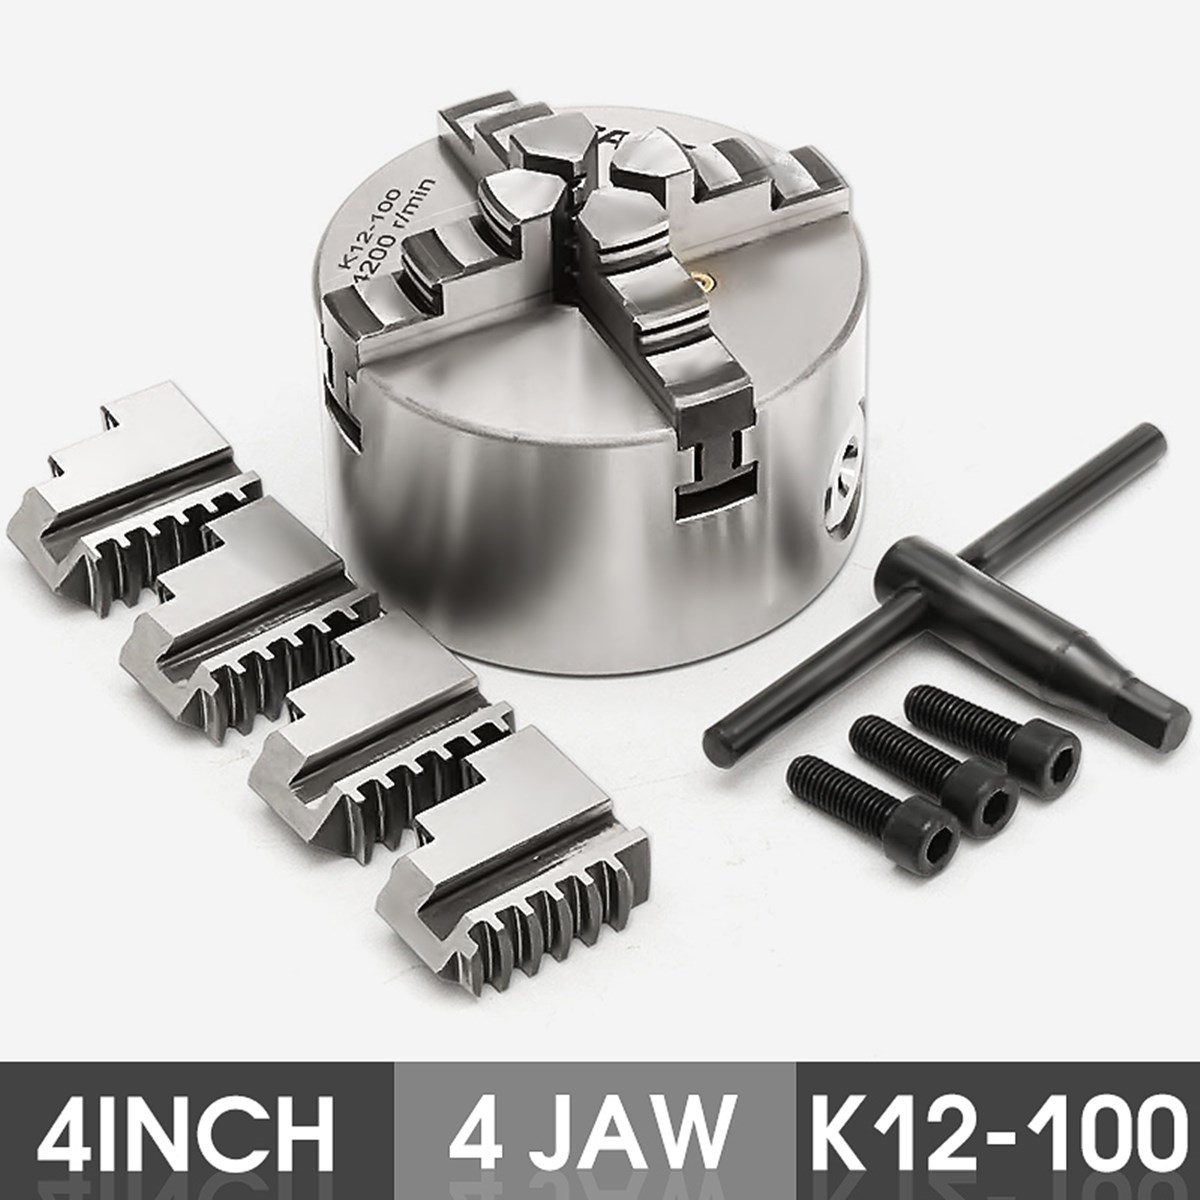 4 Jaw K12-100 4'' Lathe Chuck Self Centering Hardened Steel CNC Drilling Milling with Wrench and Screws Hardened Steel